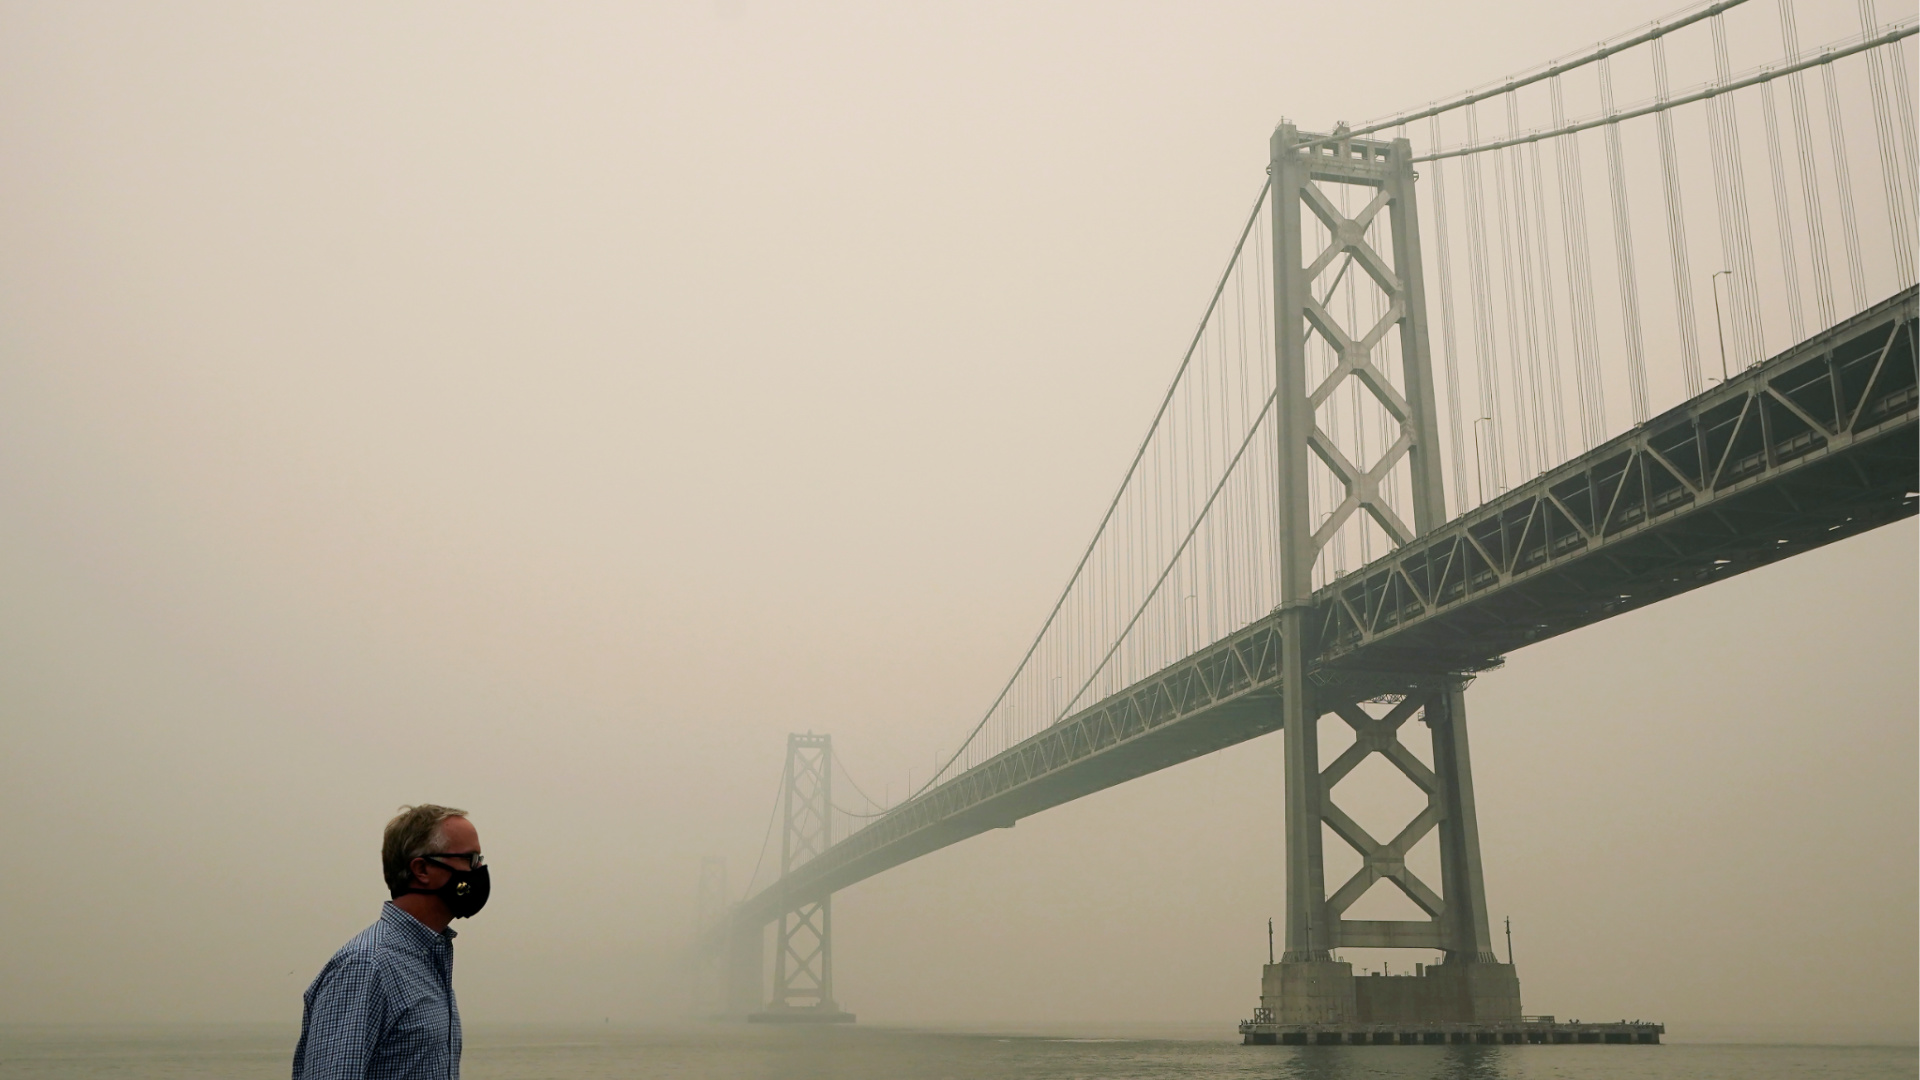 Smoke and haze from wildfires partially obscures the view of the San Francisco-Oakland Bay Bridge along the Embarcadero in San Francisco on Sept. 10, 2020. (AP Photo/Jeff Chiu)